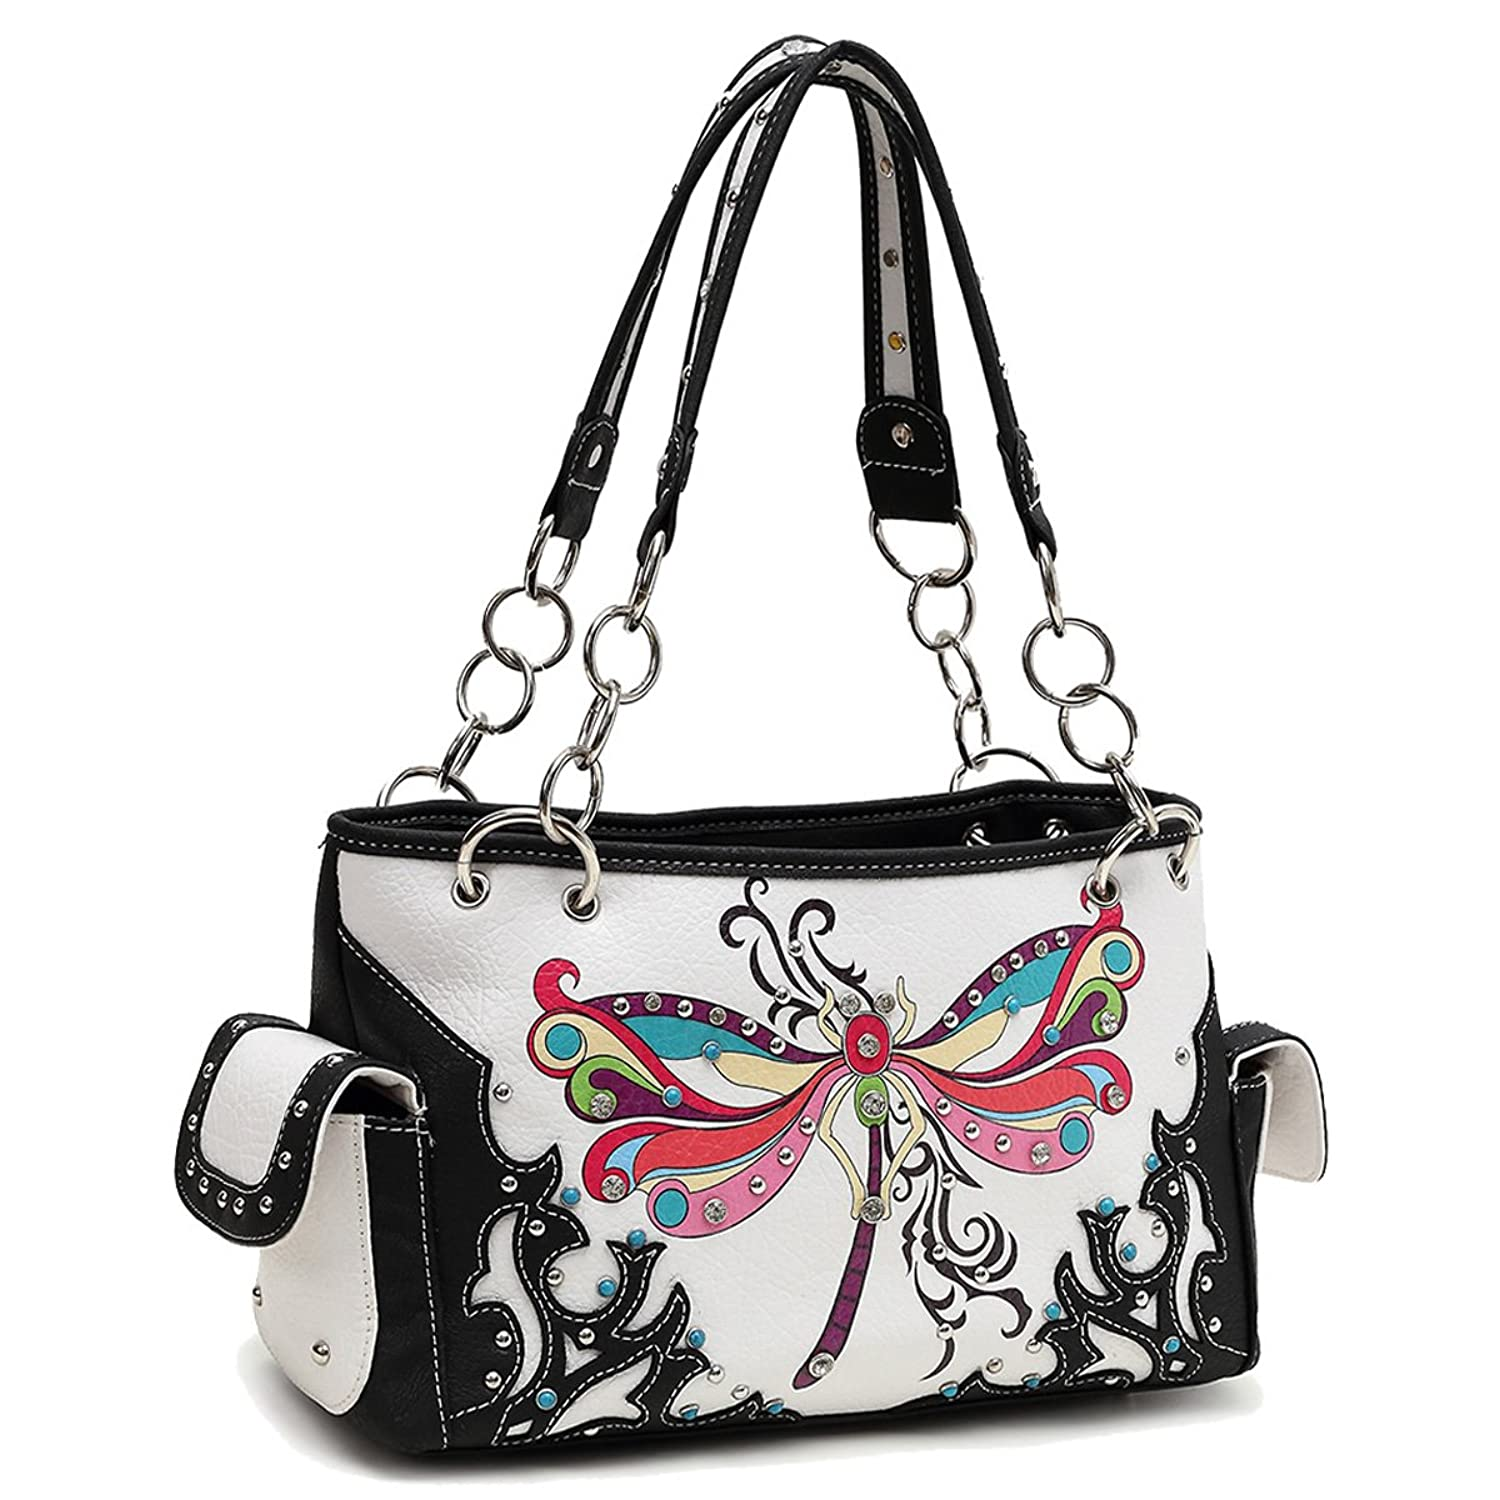 e8db139ad Western Handbag Wristlet Crossbody Purses Women Black: Amazon.co.uk: Shoes  & Bags